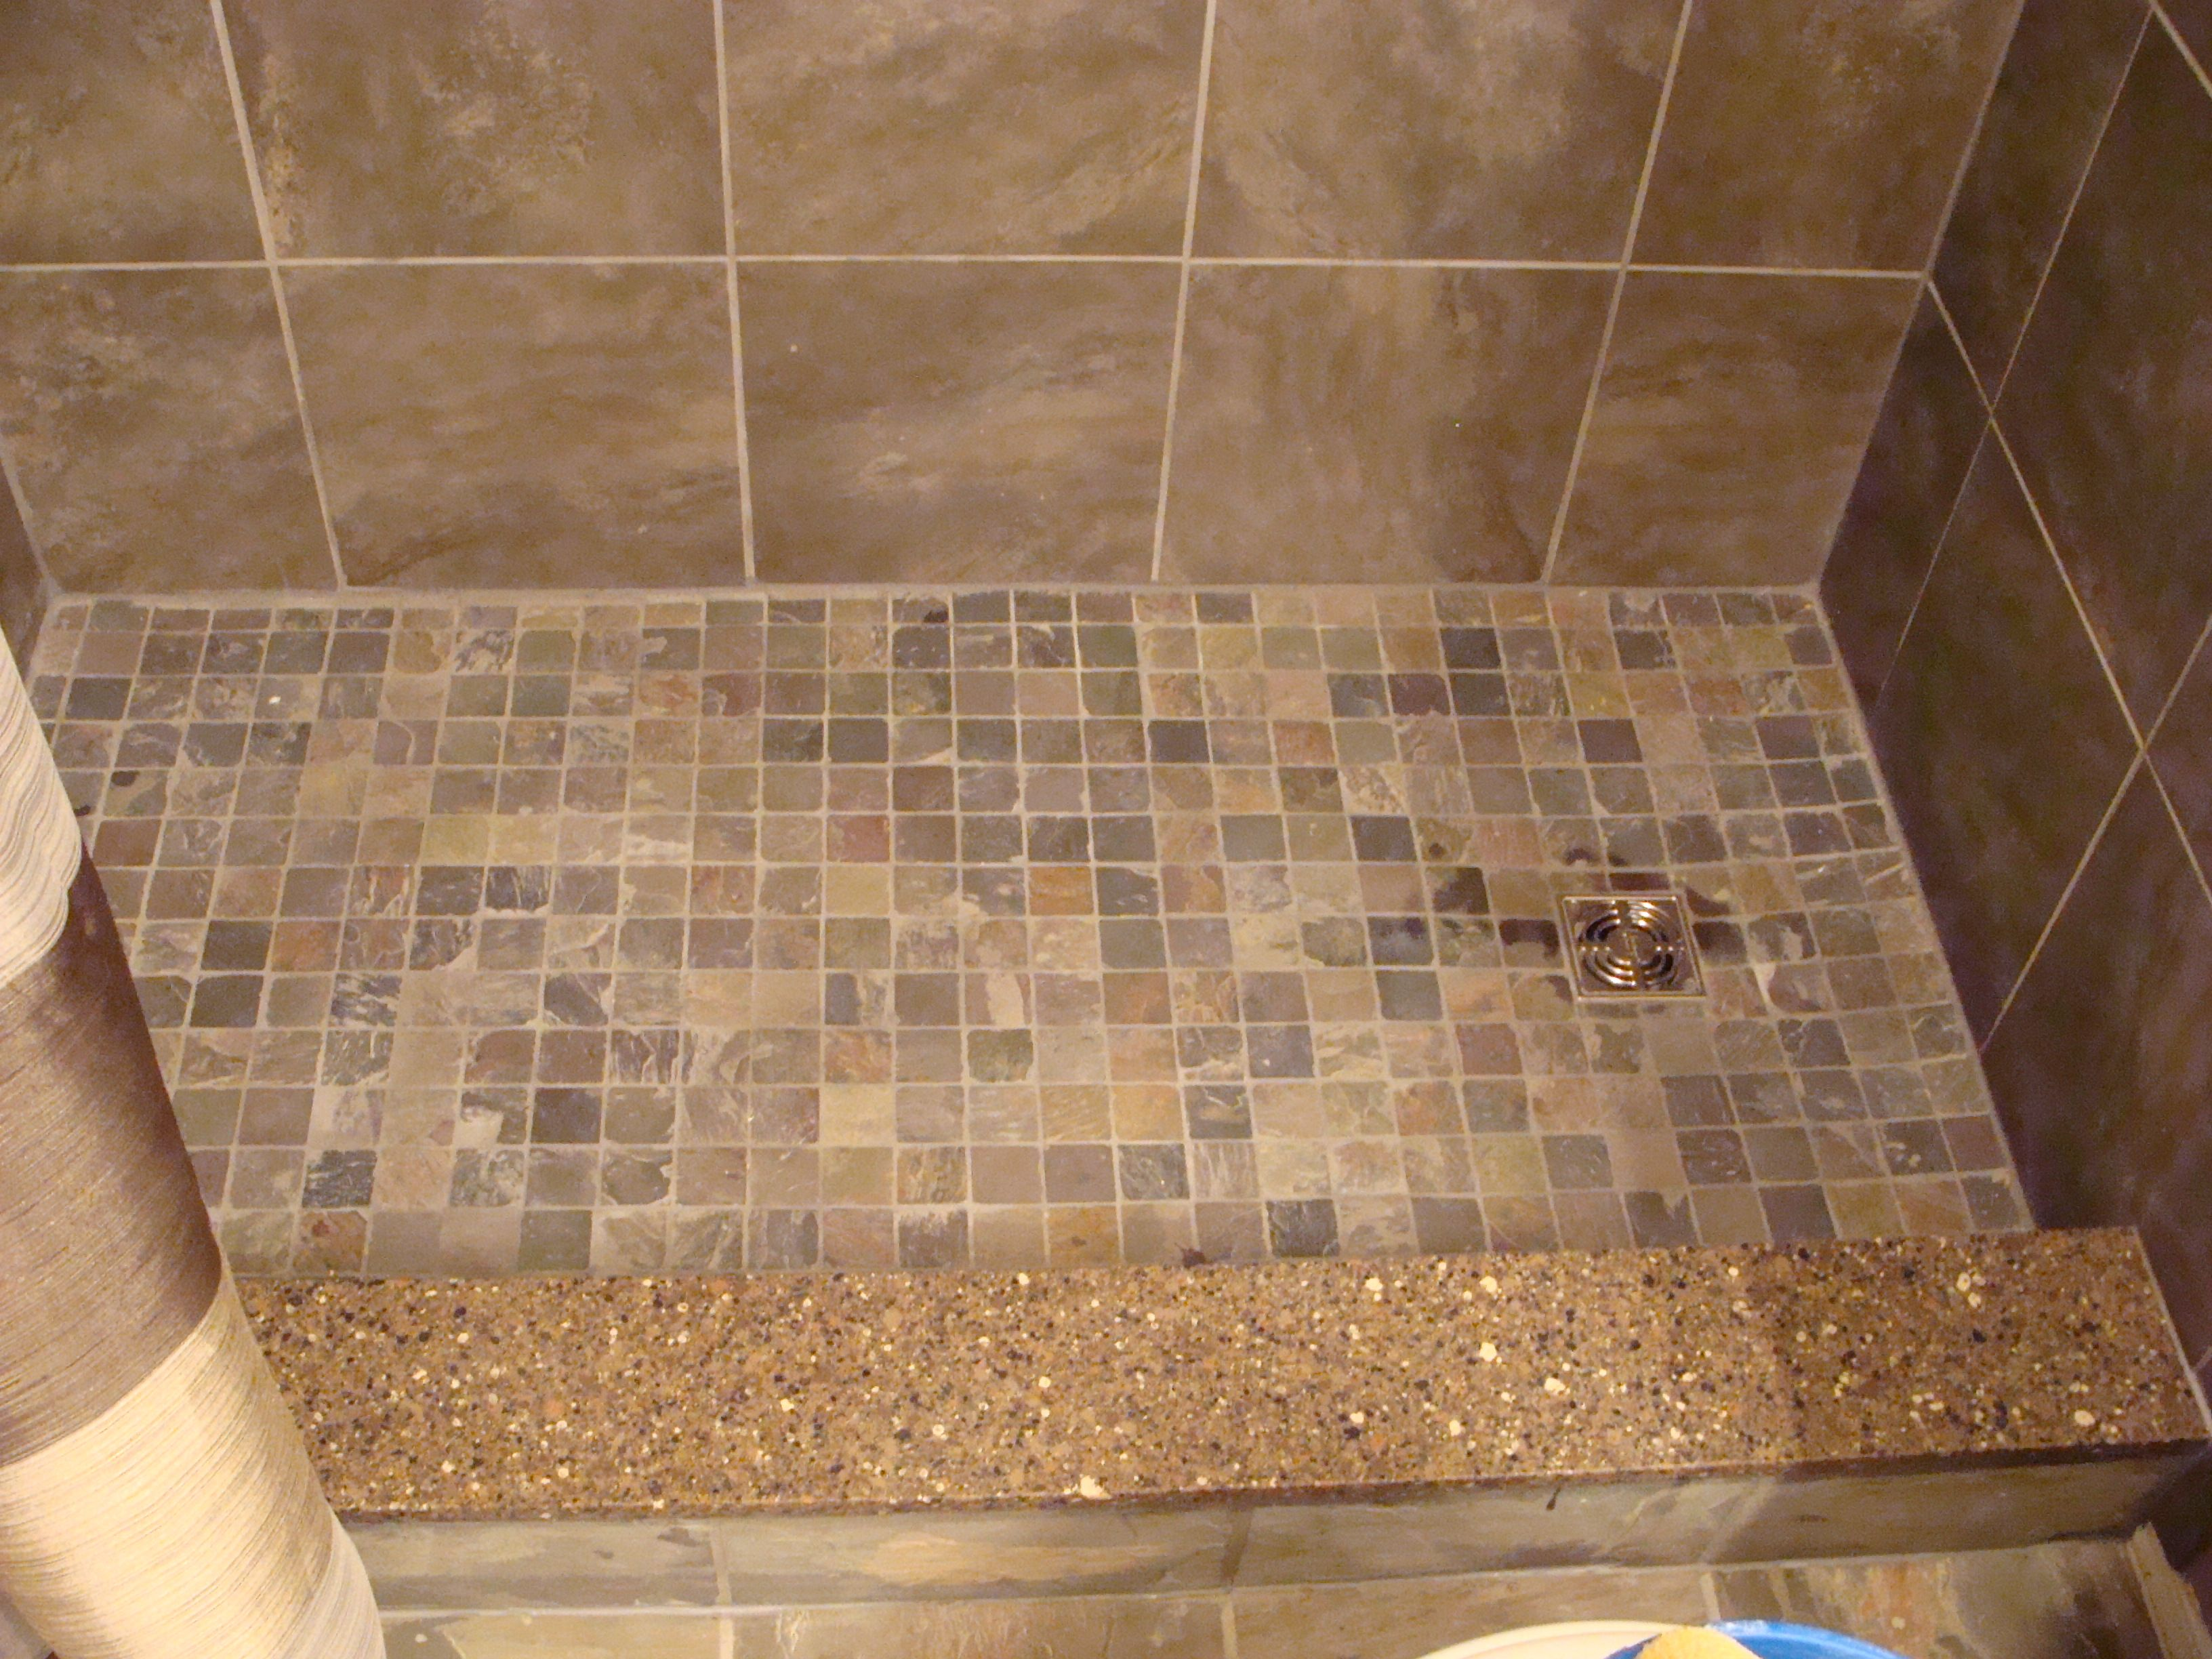 Slate mosaic tiles on shower floor quartz shower curb Bathroom tile ideas mosaic